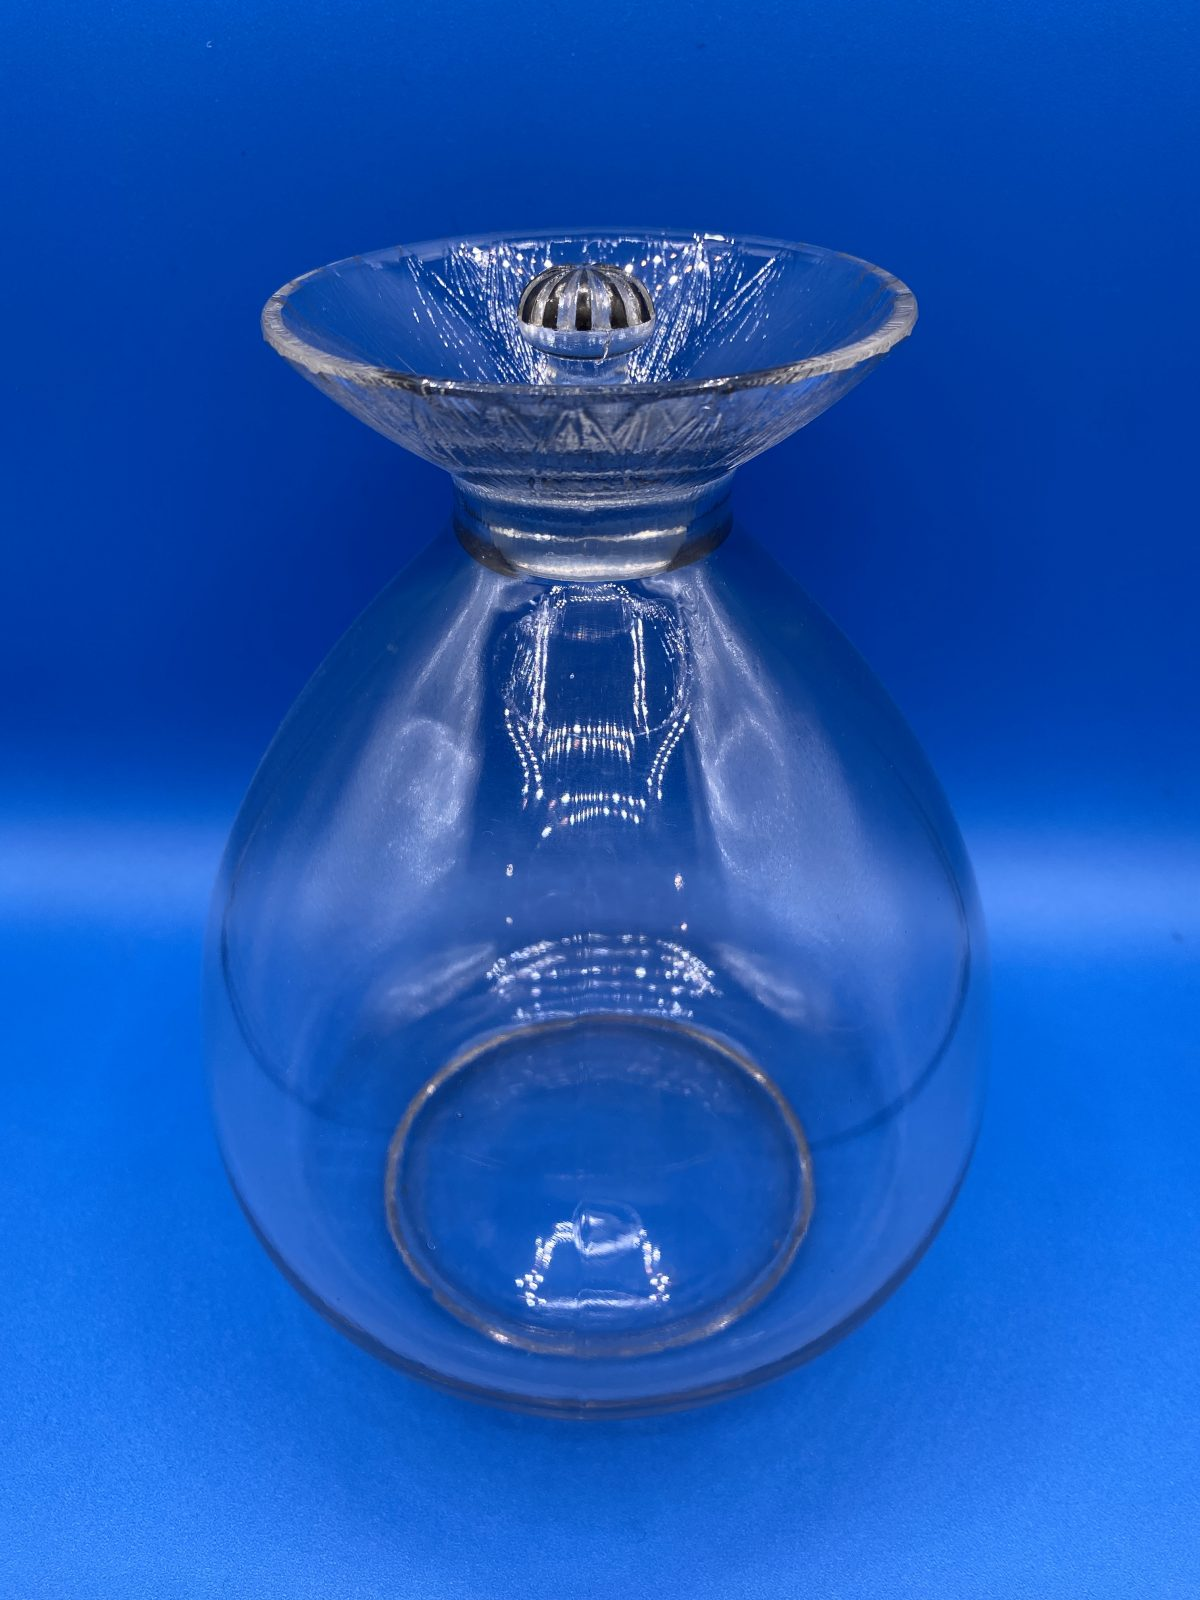 G1 - A Rene Lalique Port Decanter in the Lotus Pattern c1924, not made after 1947. Marcilhac page 830, no.5031. Fully signed and numbered to base, slight wear to enamel on stopper, otherwise perfect condition.  £495